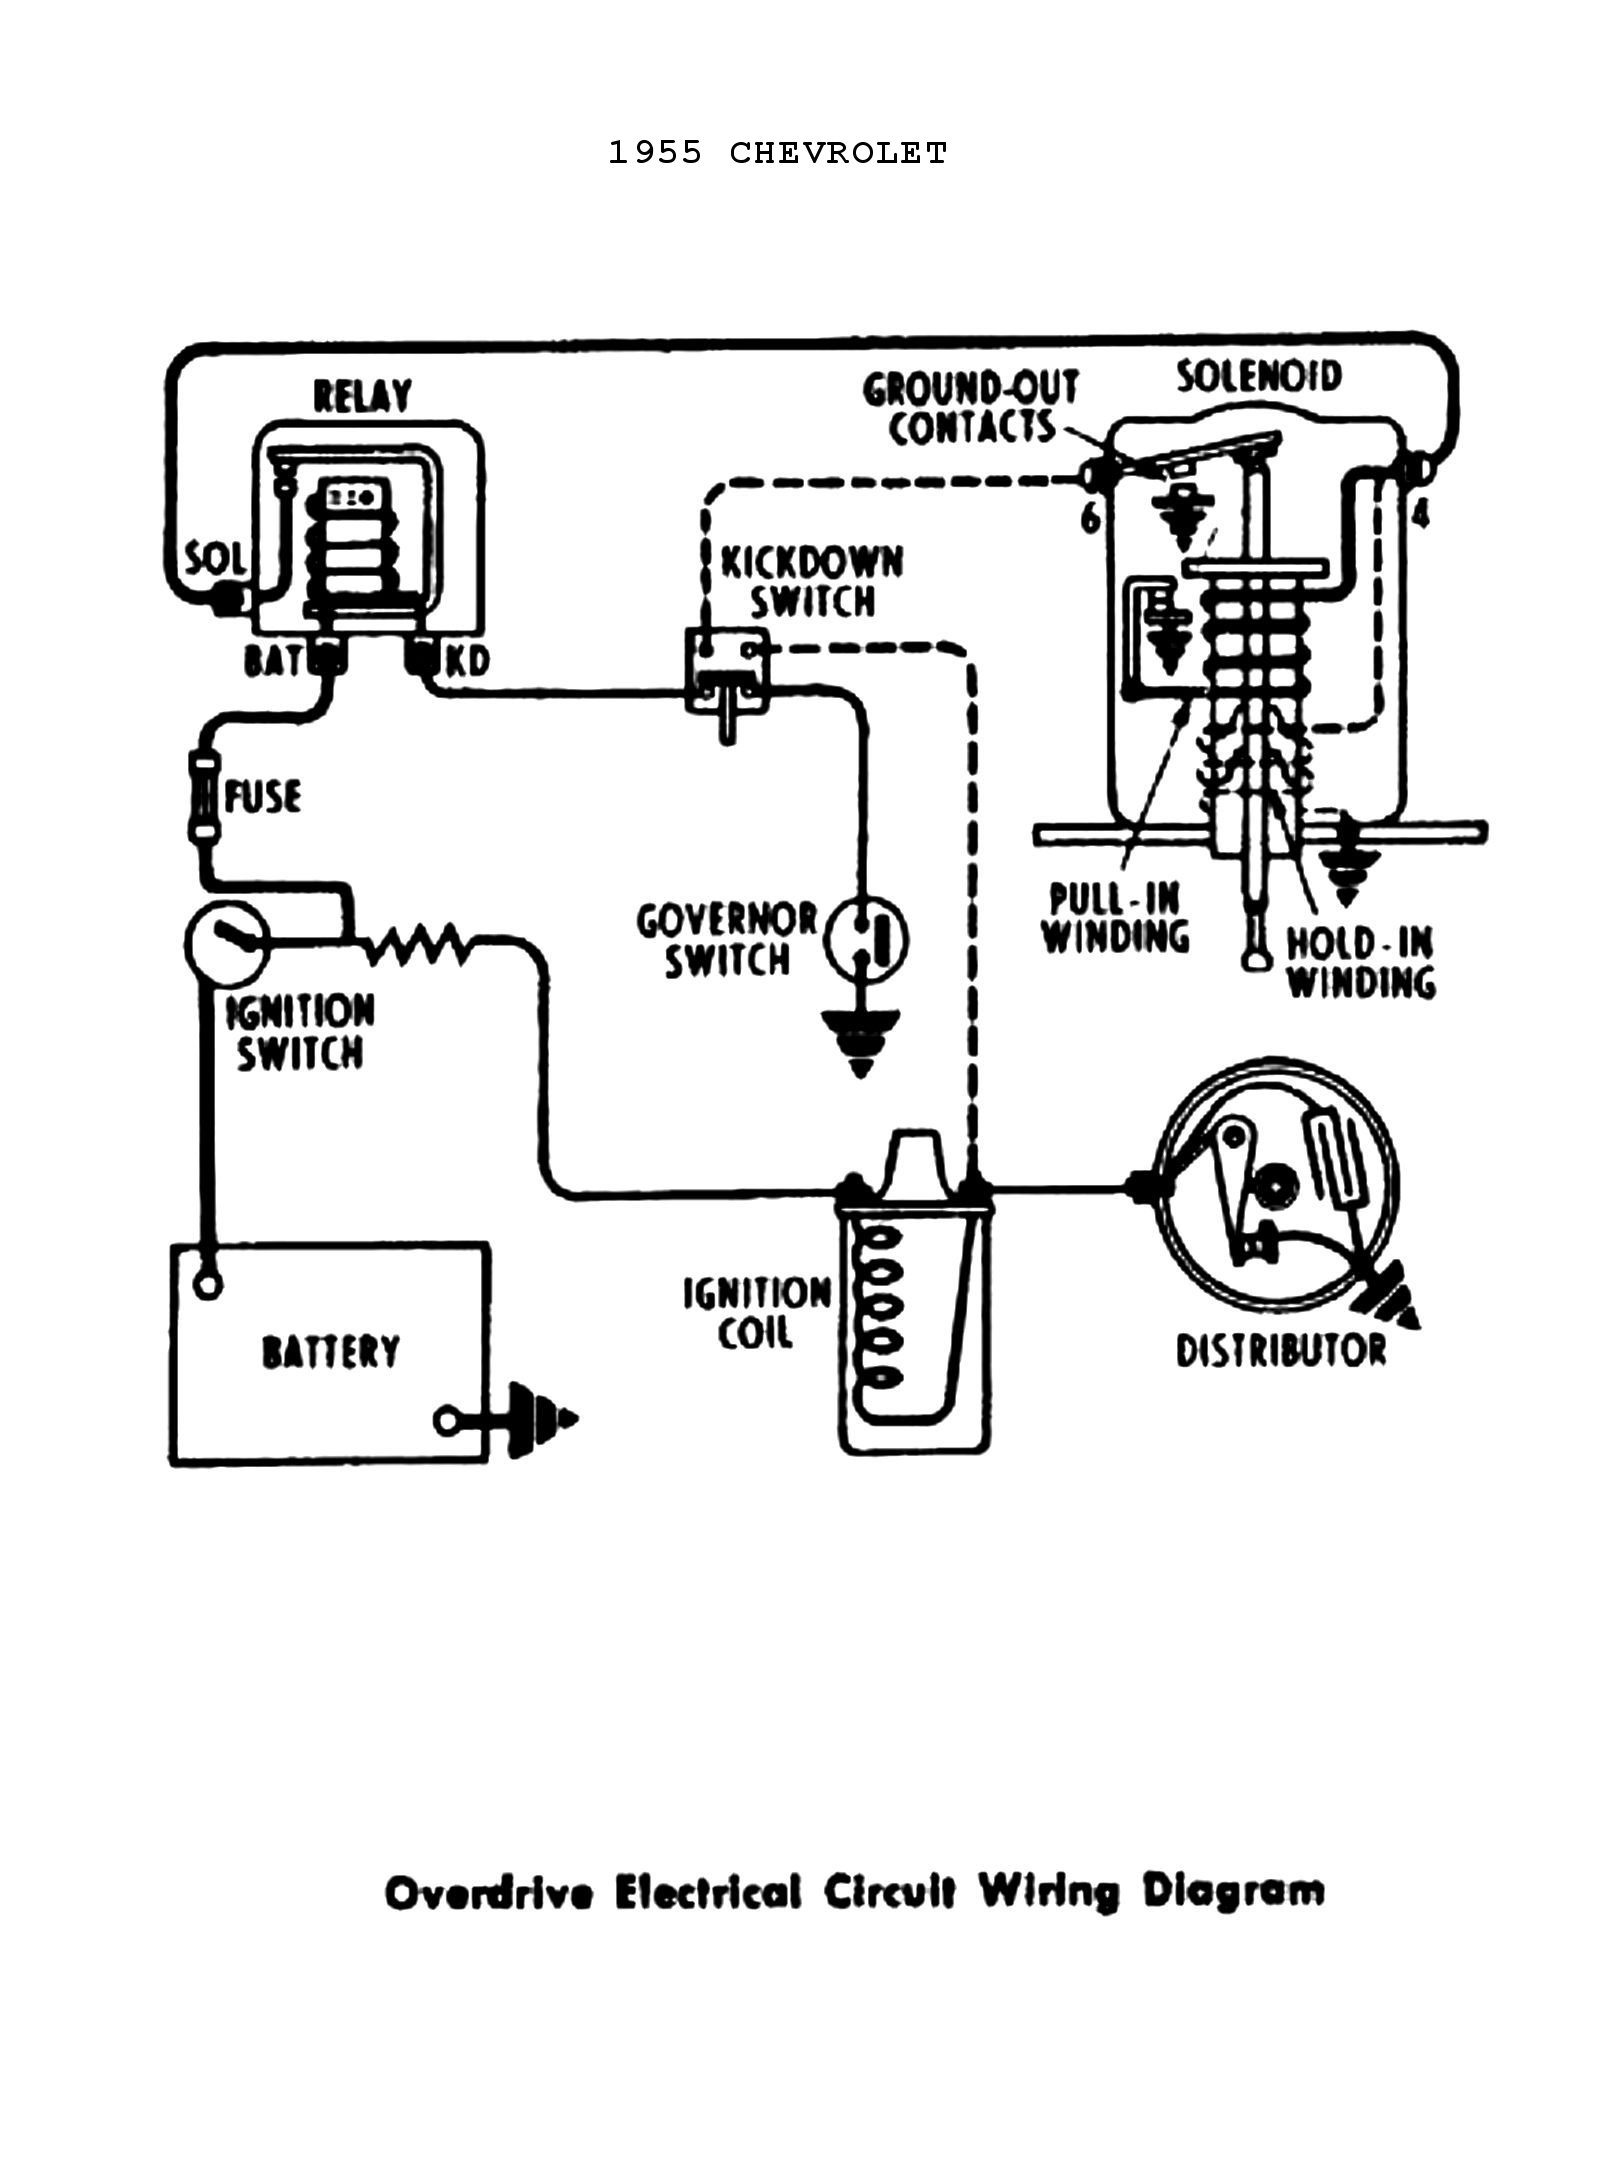 55odtrans1 simple chevy wiring diagram chevy truck wiring \u2022 wiring diagrams 1953 Ford Car Wiring Diagram at crackthecode.co